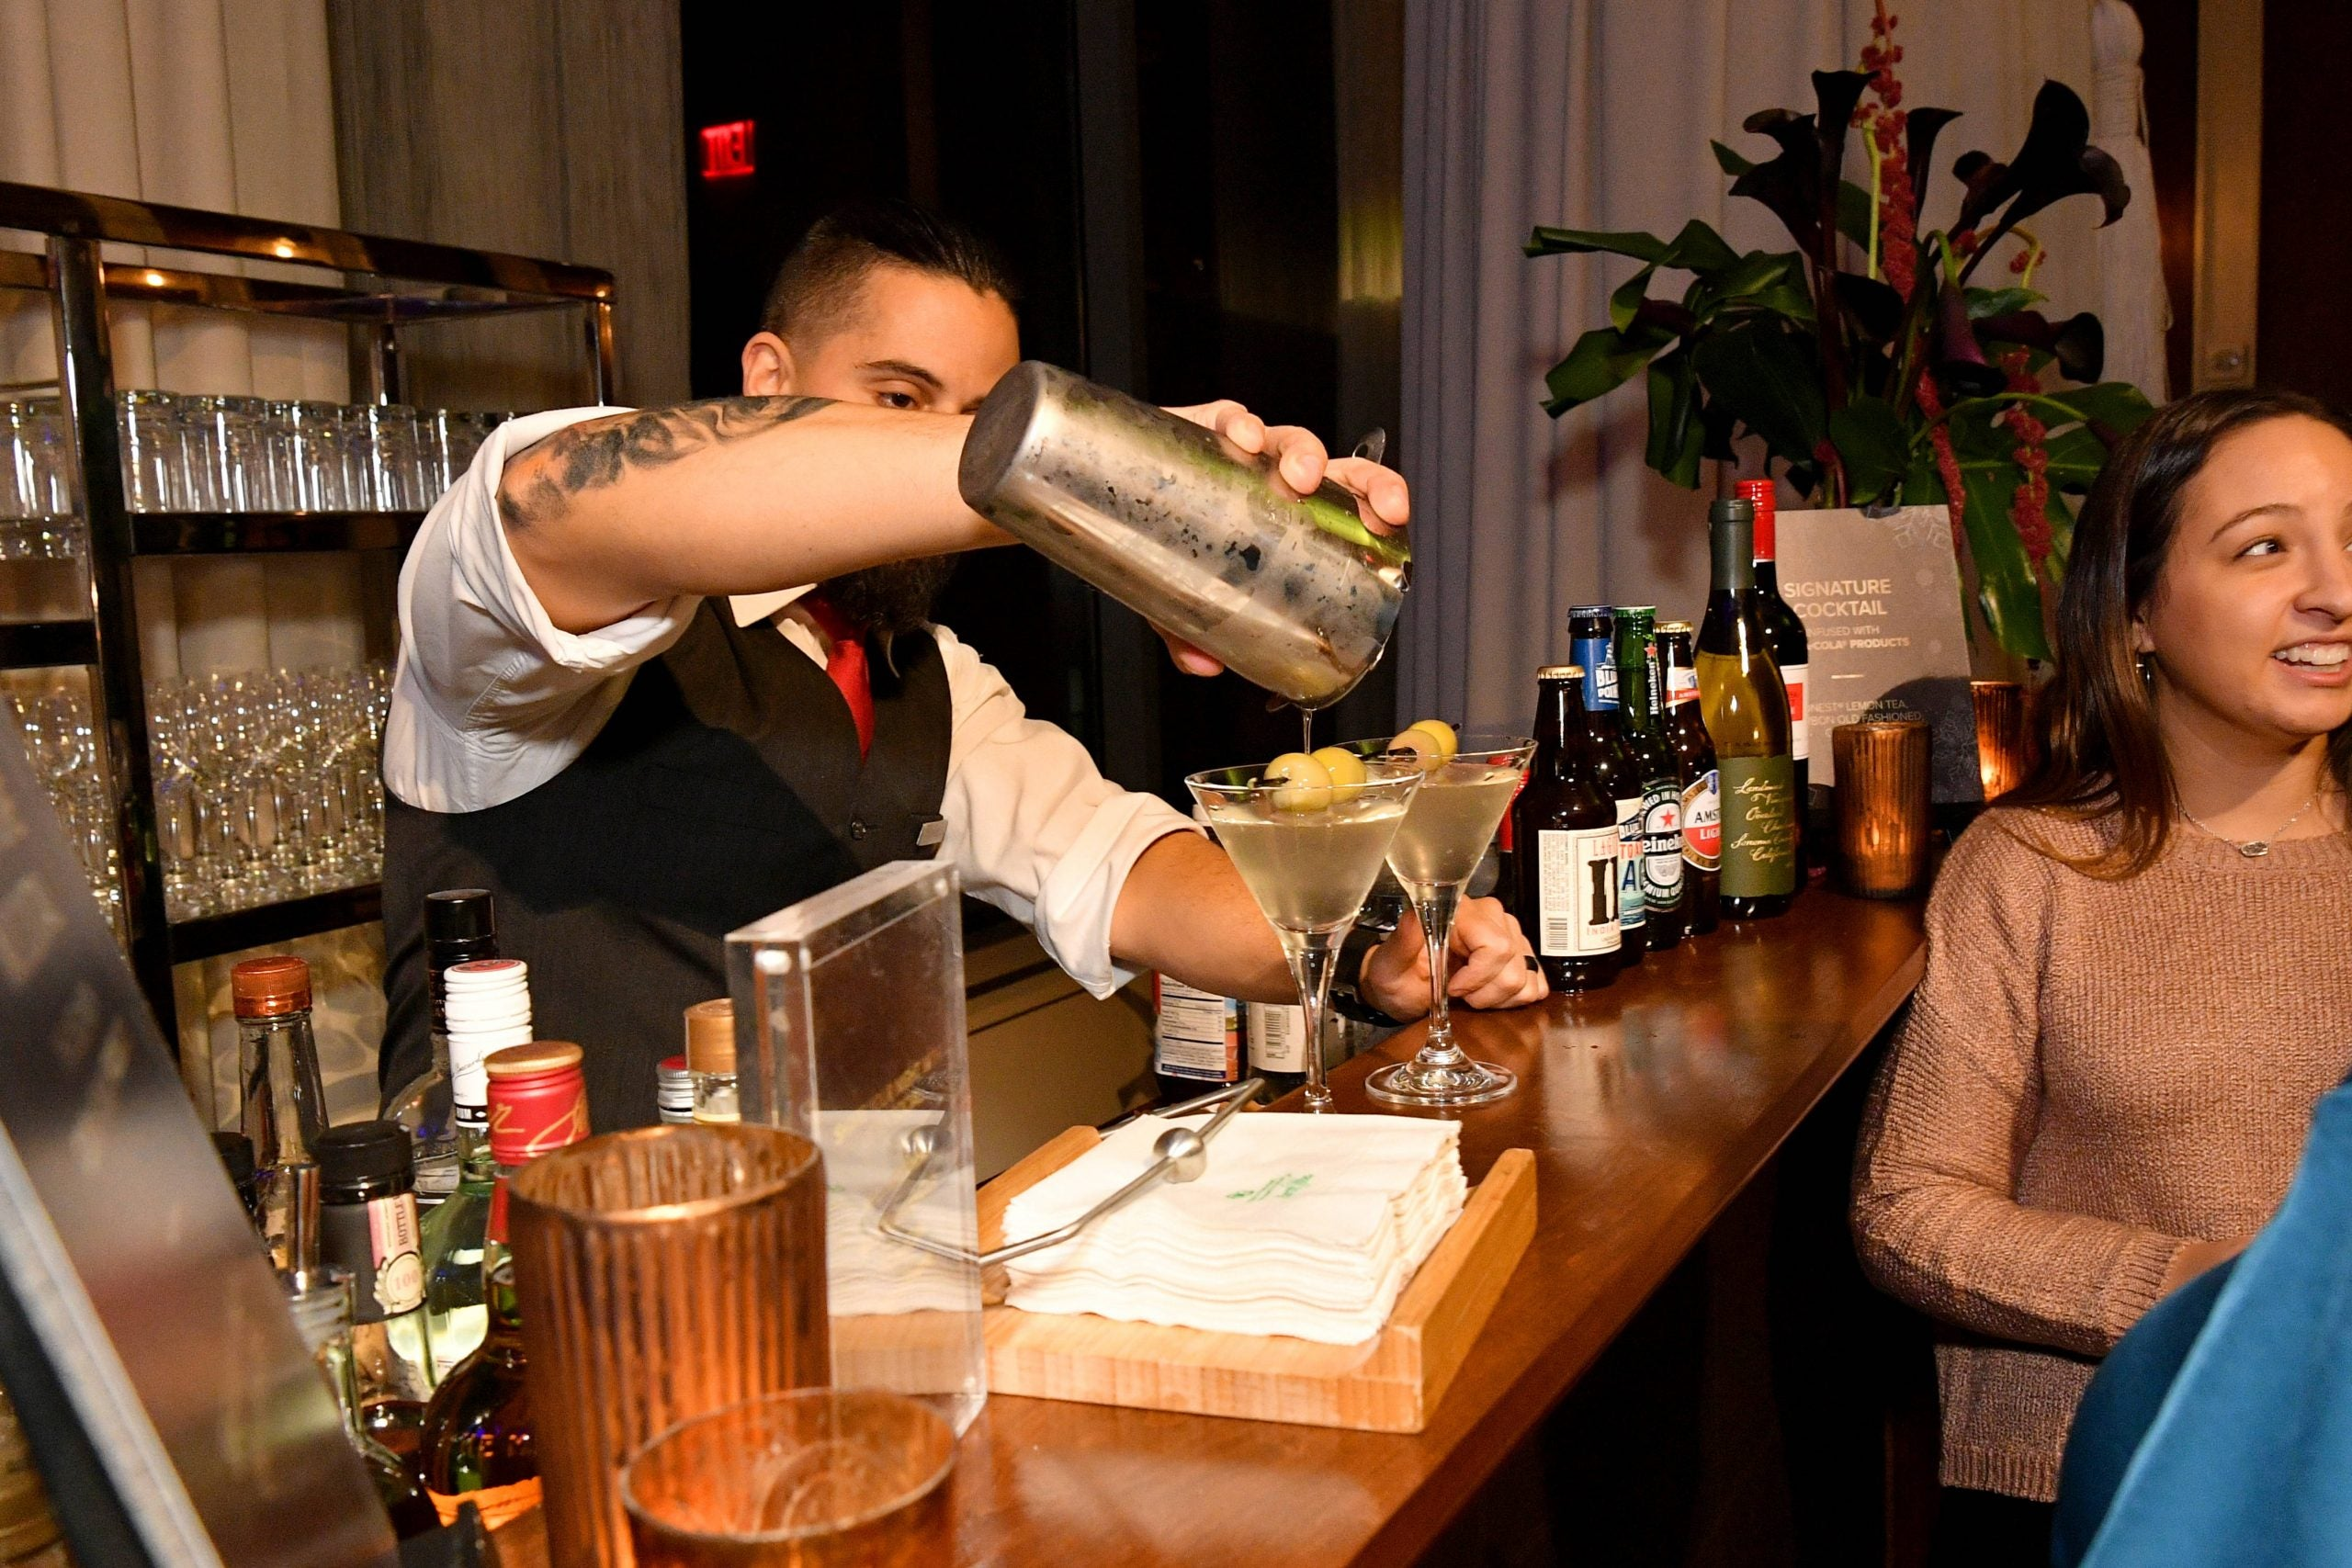 As Alexandria Ocasio-Cortez knows: to truly understand US politics, ask a bartender